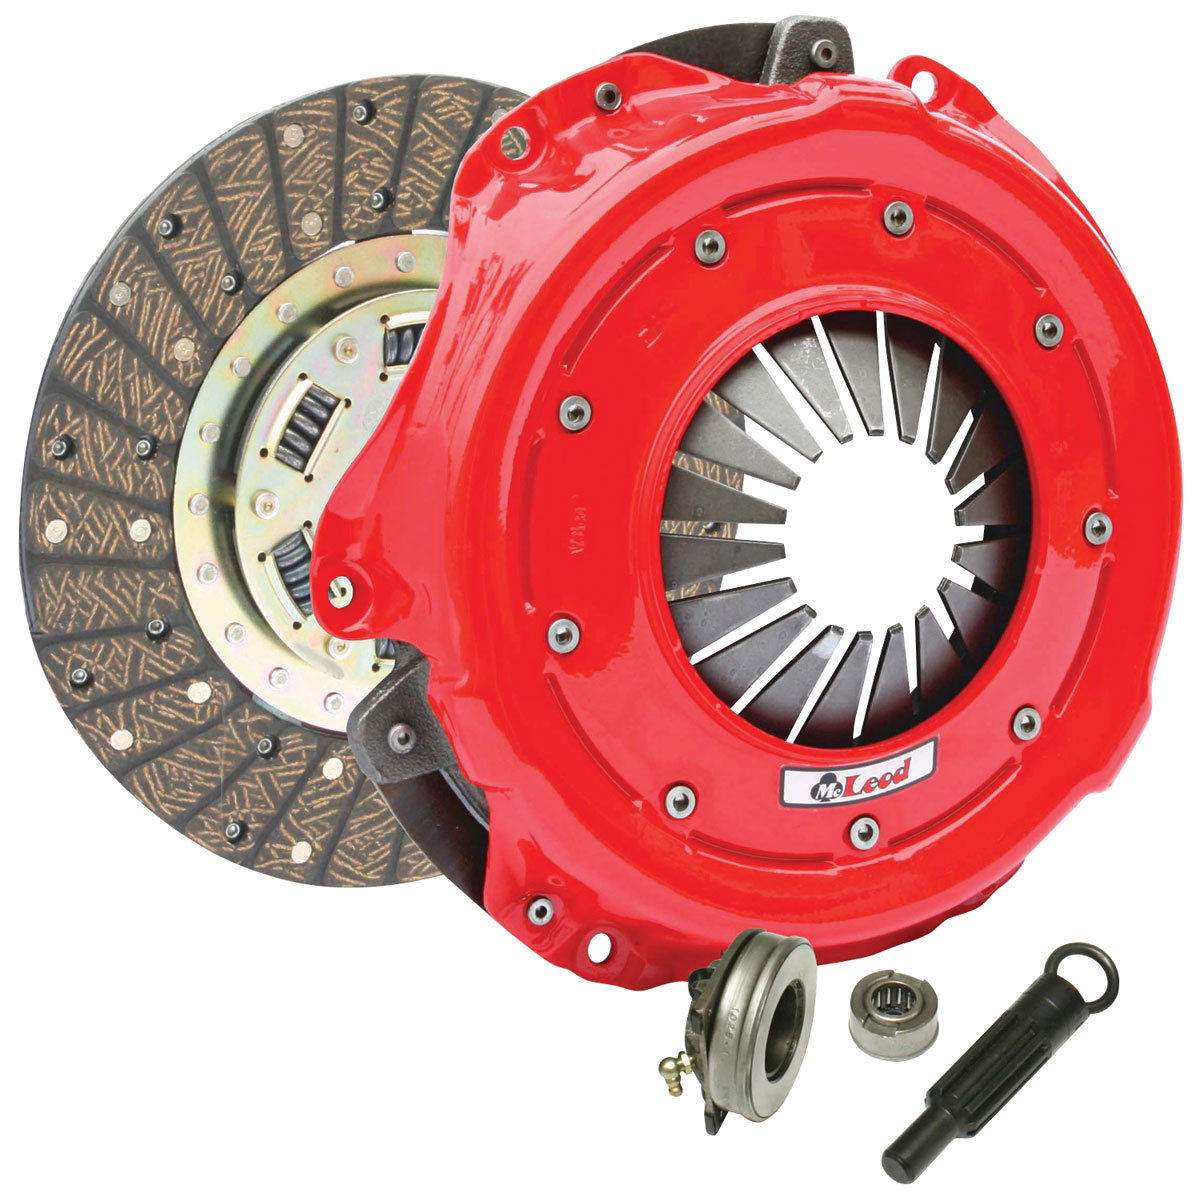 "Photo of Clutch Kits, McLeod Street Pro 10.5"", 10-spline"